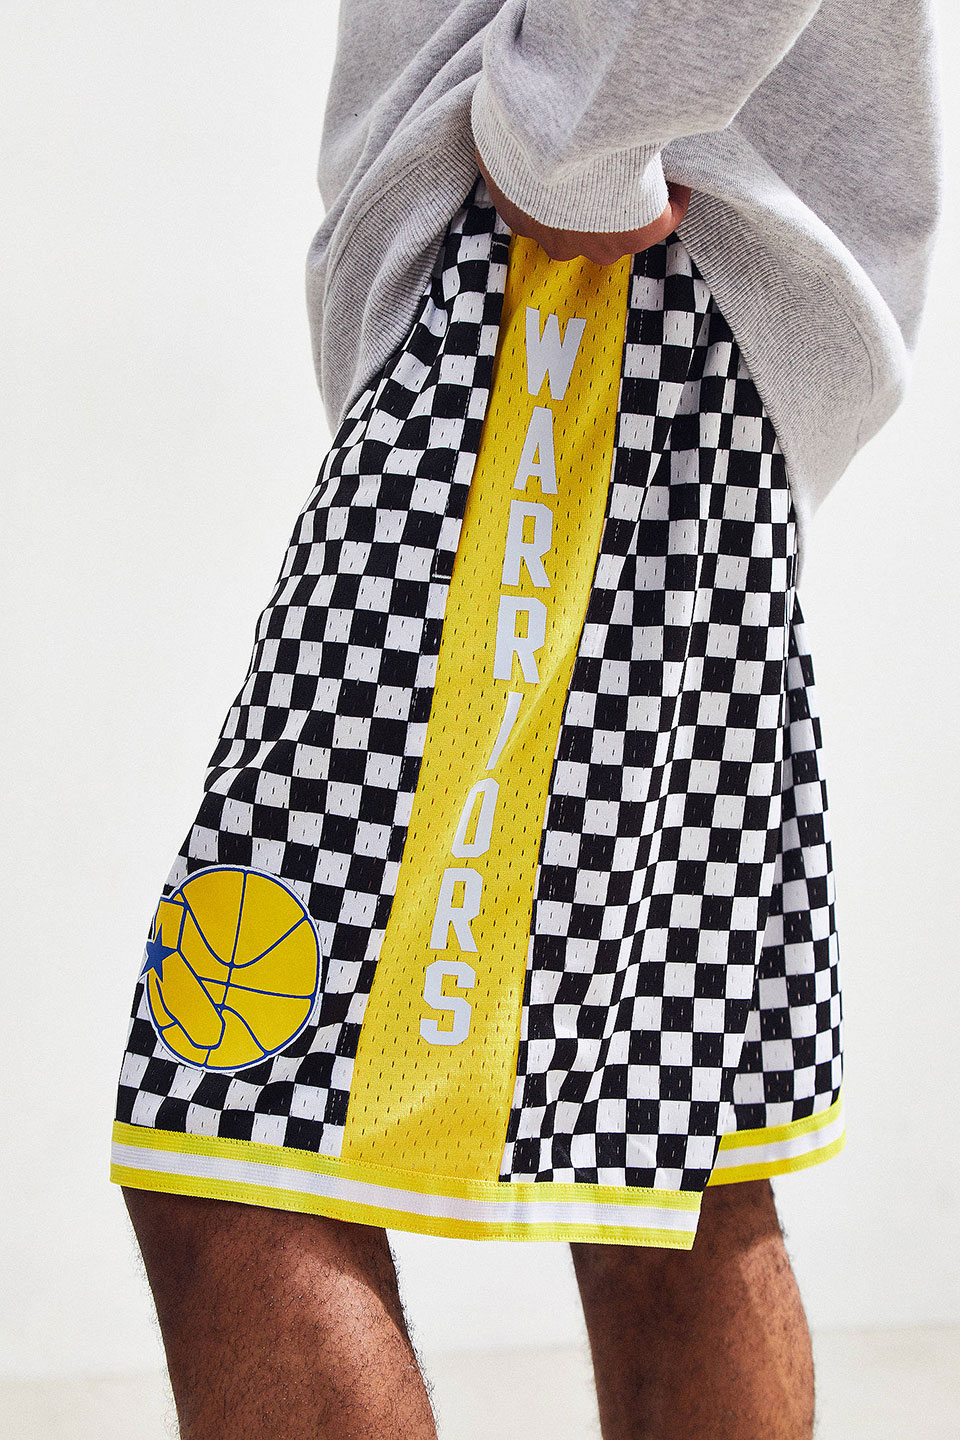 Checkered NBA Shorts & Jerseys